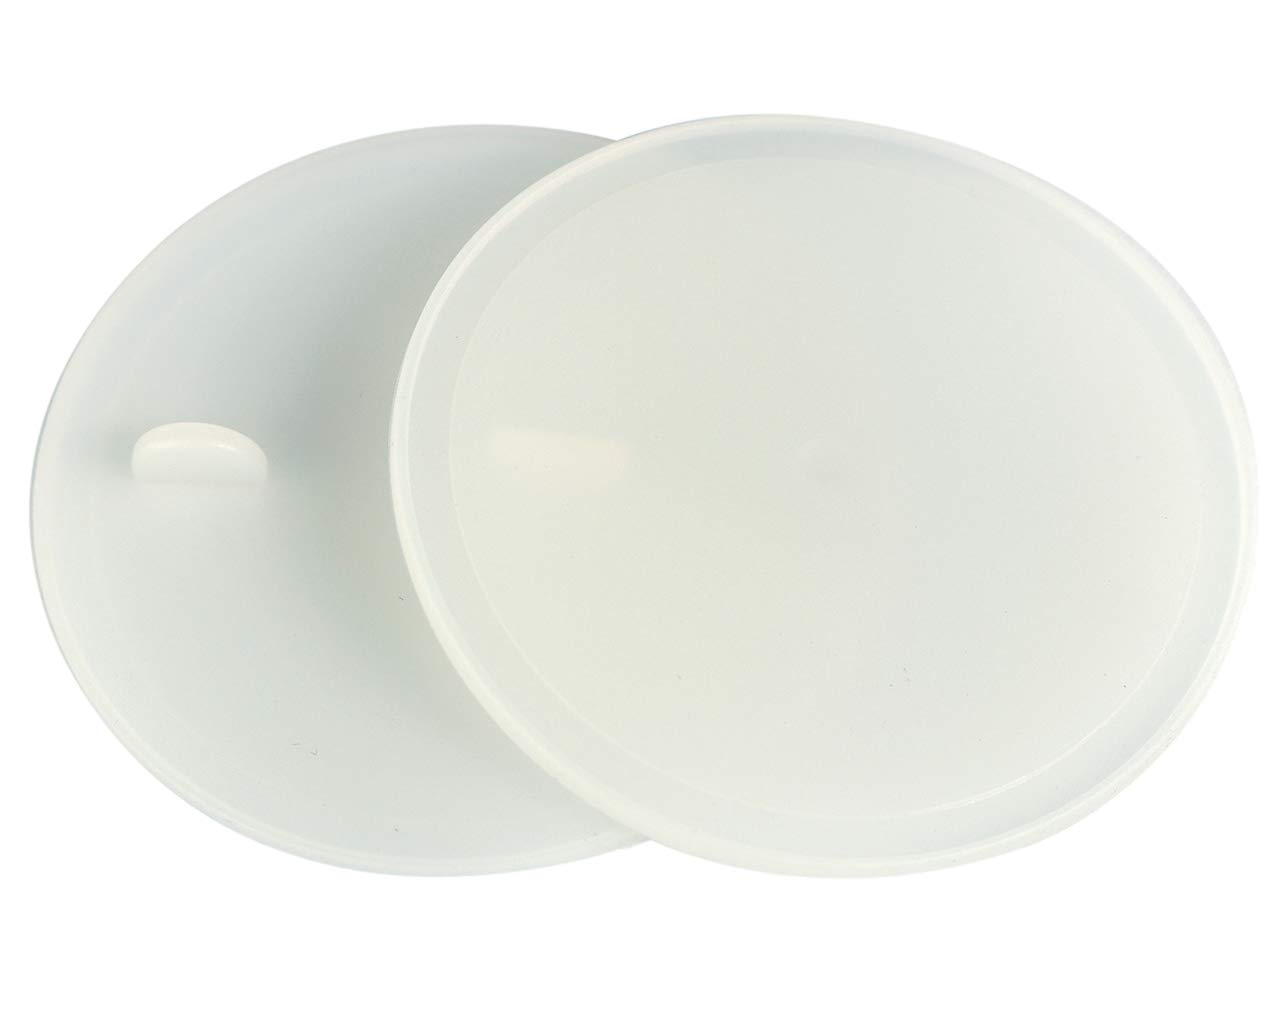 Leak Proof Platinum Silicone Sealing Lid Inserts/Liners for Mason Jars (10 Pack, Regular Mouth)